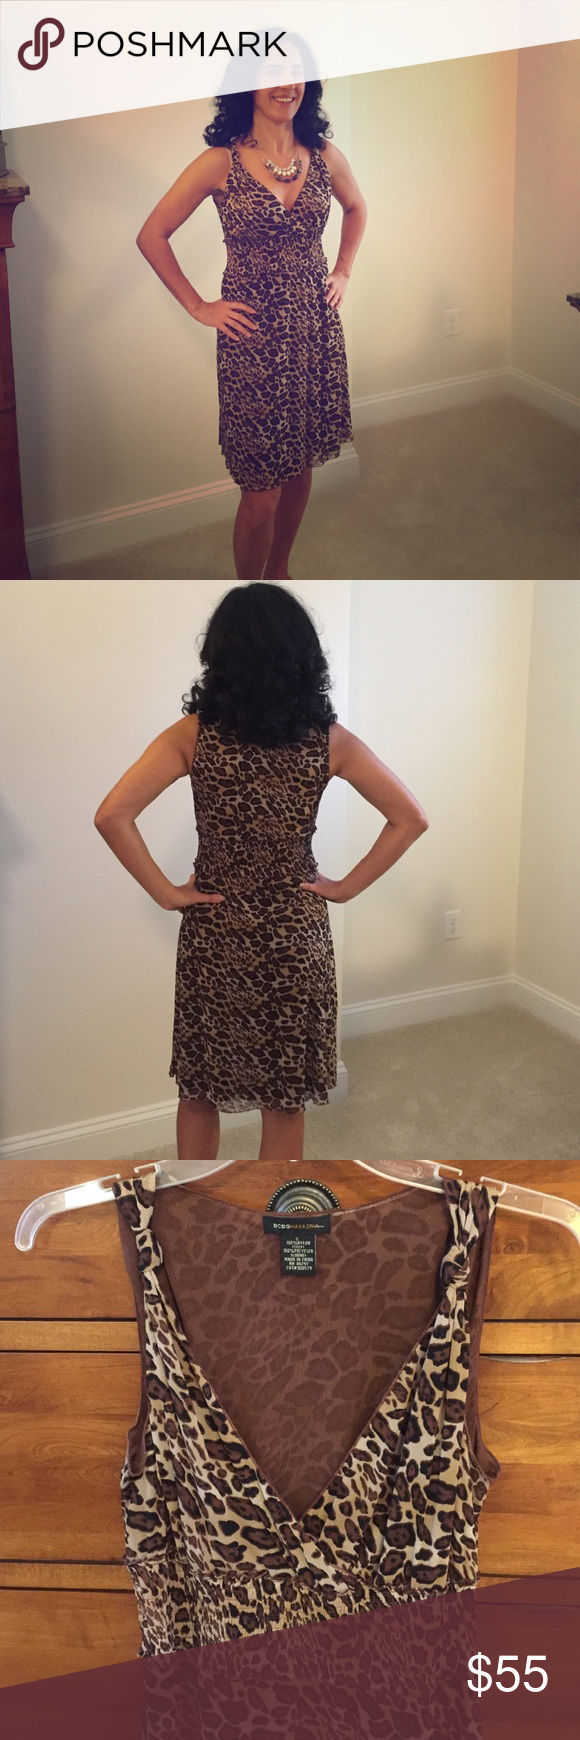 BCBG Max Azria leopard print dress BCBG Max Azria leopard print dress. Lined. Flattering neckline and has nice stretch on top part for all different sizes. Waist area has nice detail of cinching that flatters the figure.  Hits above the knee.  I am 5 '6 and typically wear either a 2 or 4 in most brands. Only worn 2 times. BCBGMaxAzria Dresses